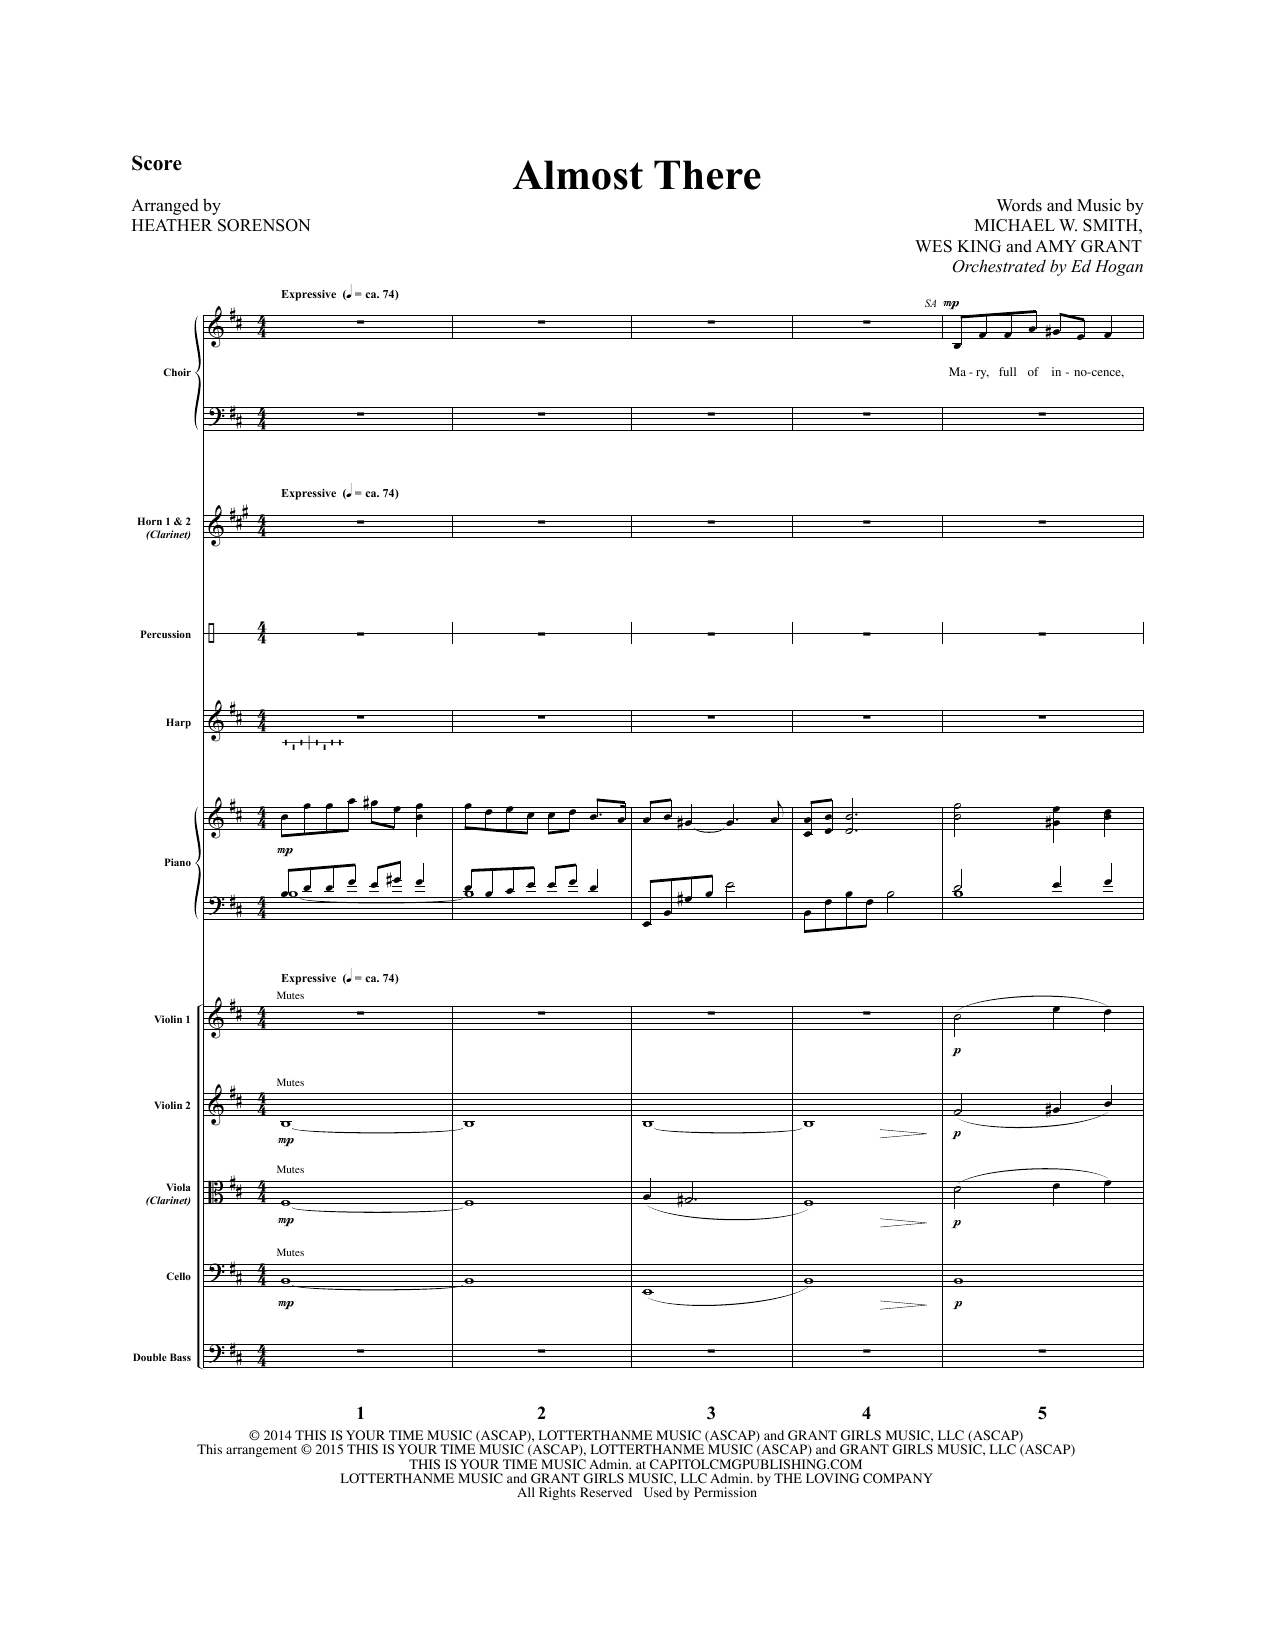 Almost There - Full Score sheet music